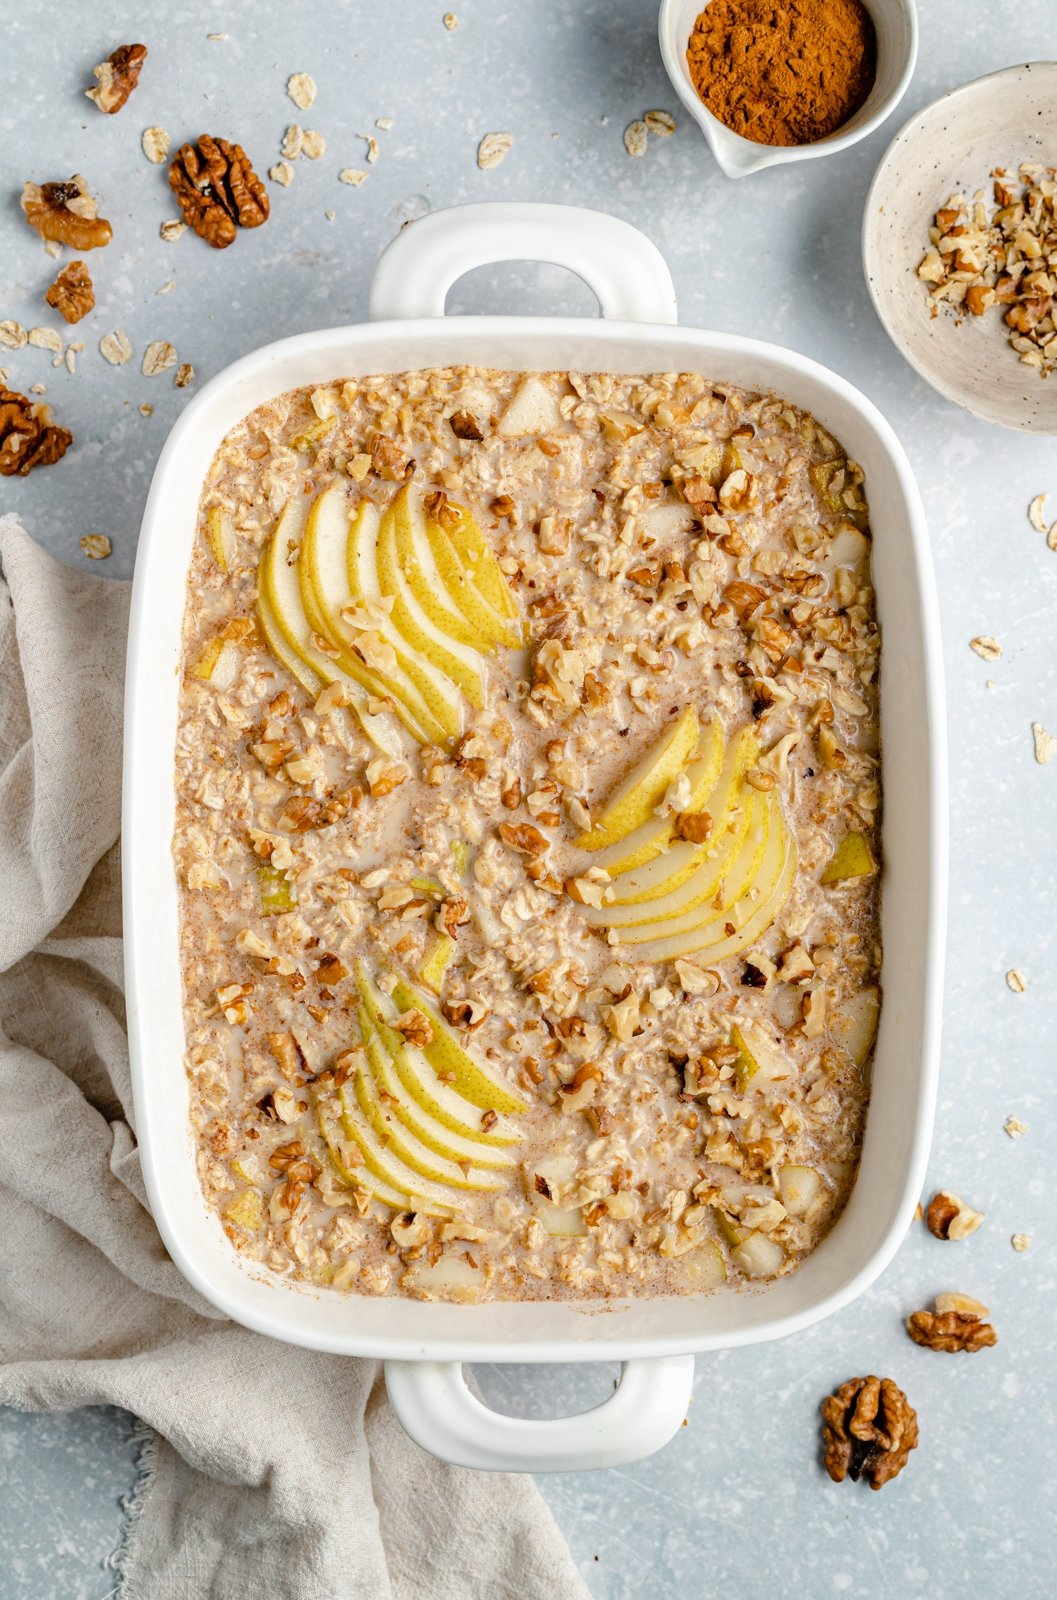 unbaked pear oatmeal bake in a baking dish